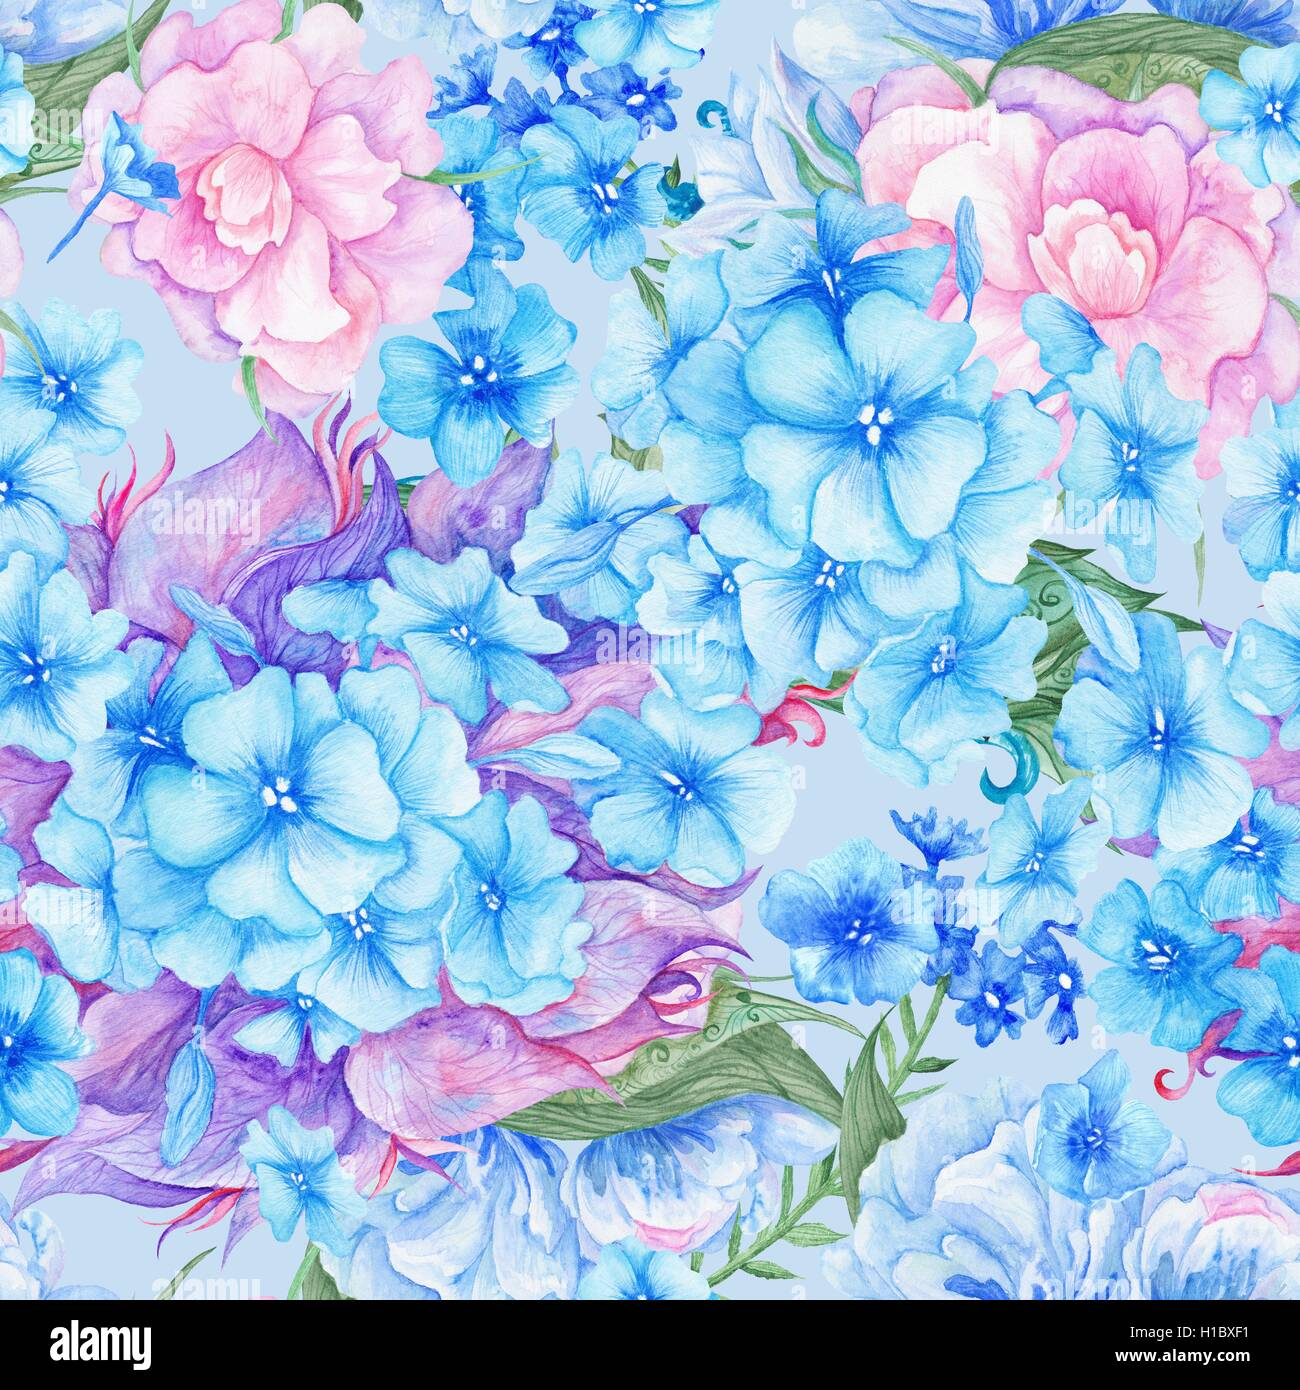 Seamless Watercolor Flower Texture For Wedding Wallpaper Textile Design With Blue And Pink Hydrangea Peony